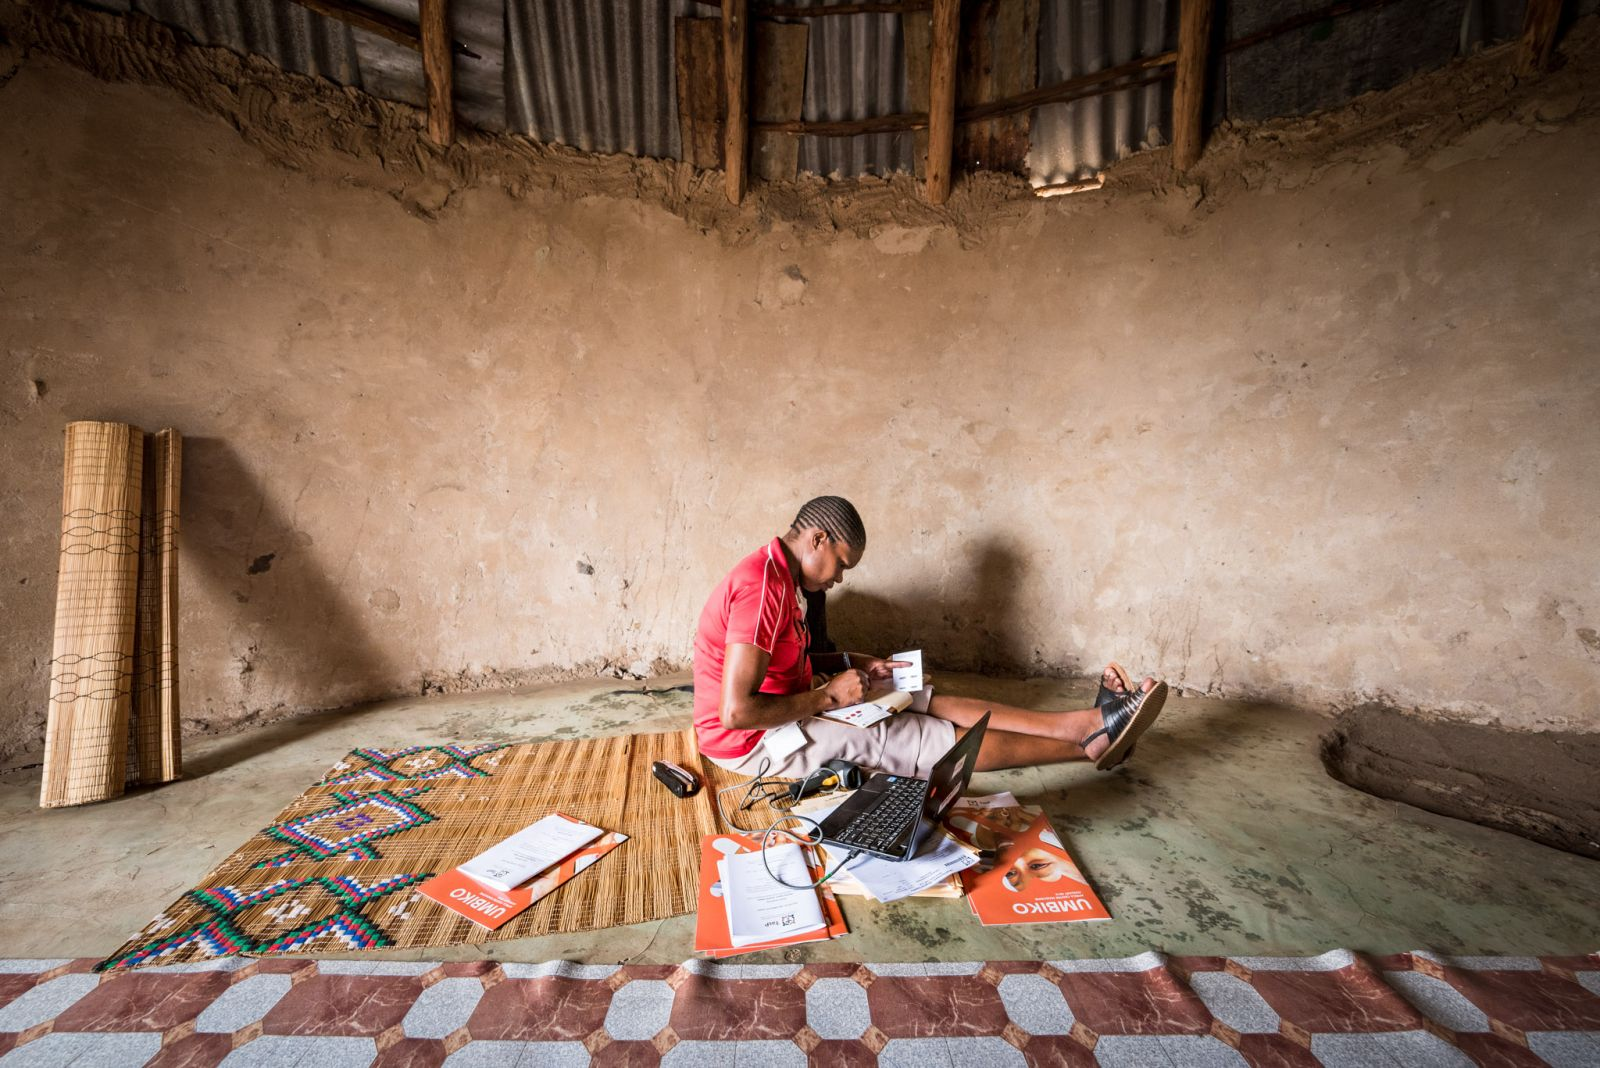 Africa Health Research Institute fieldworker Philile Mcambi captures data at a home in northern KwaZulu-Natal.